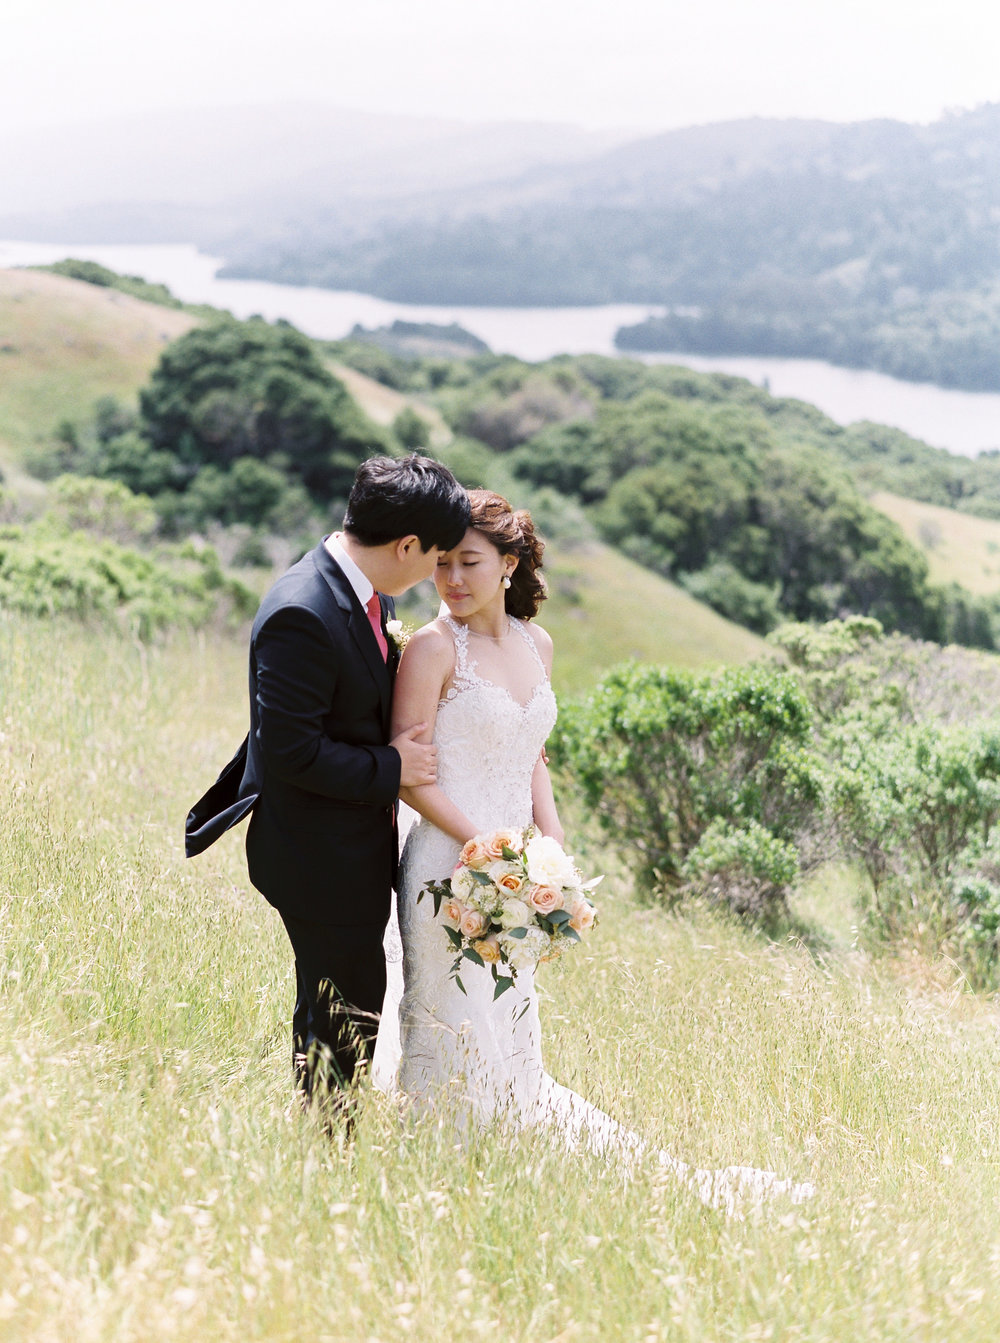 mountaintop-wedding-at-crystal-springs-burlingame-california-11.jpg